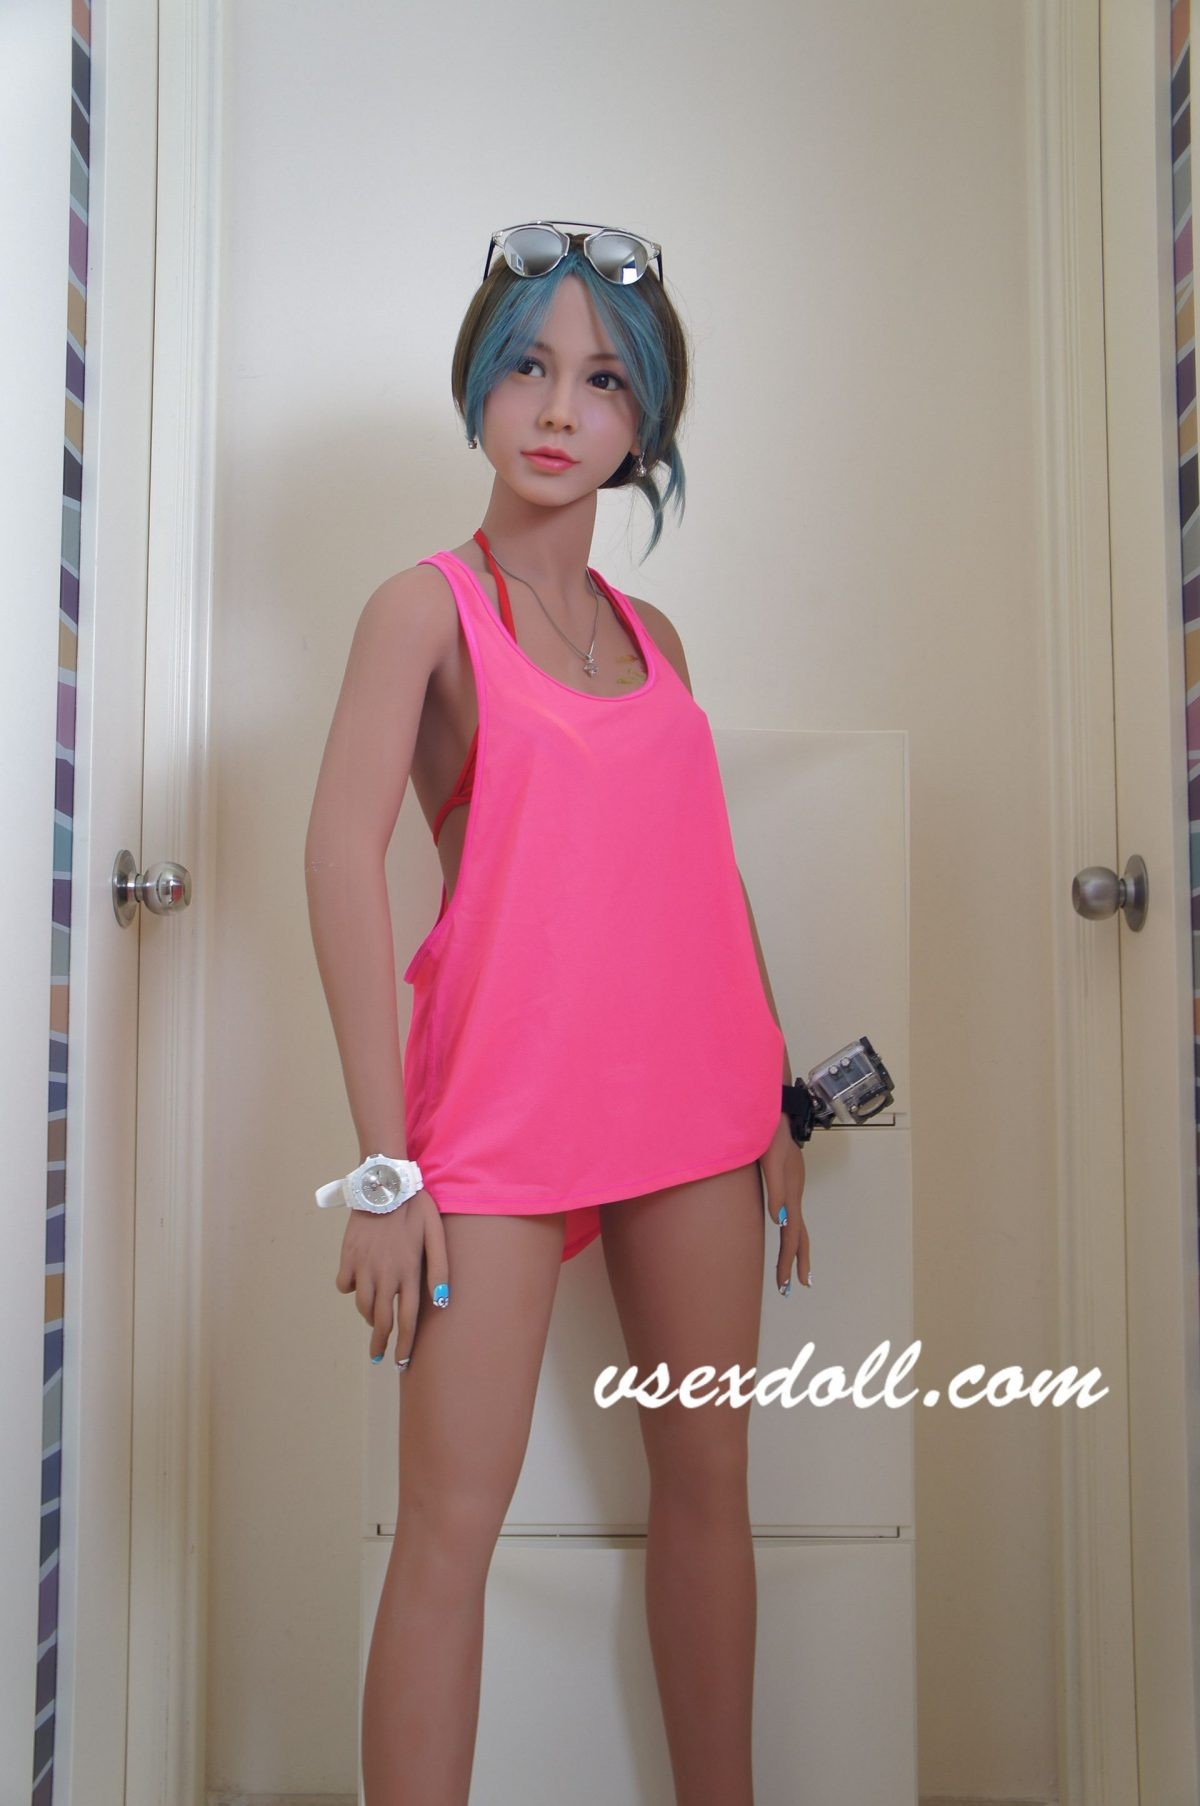 Sunglasses Girl With Blue Black Hair And Cute Little Breasts Black Sex Doll